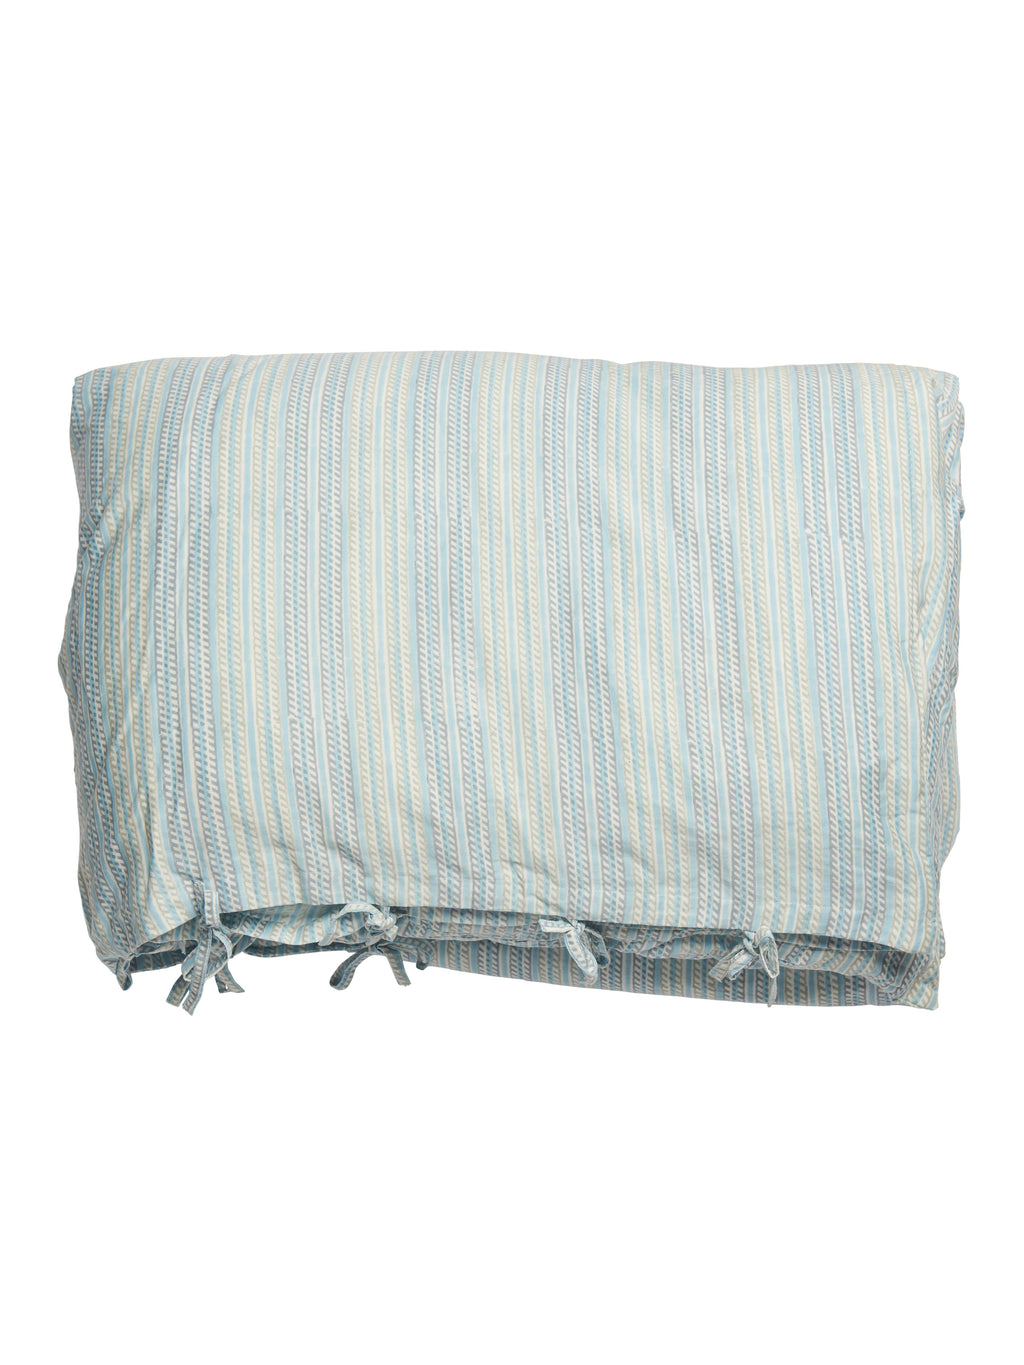 Bed set with Stripe print in Blue